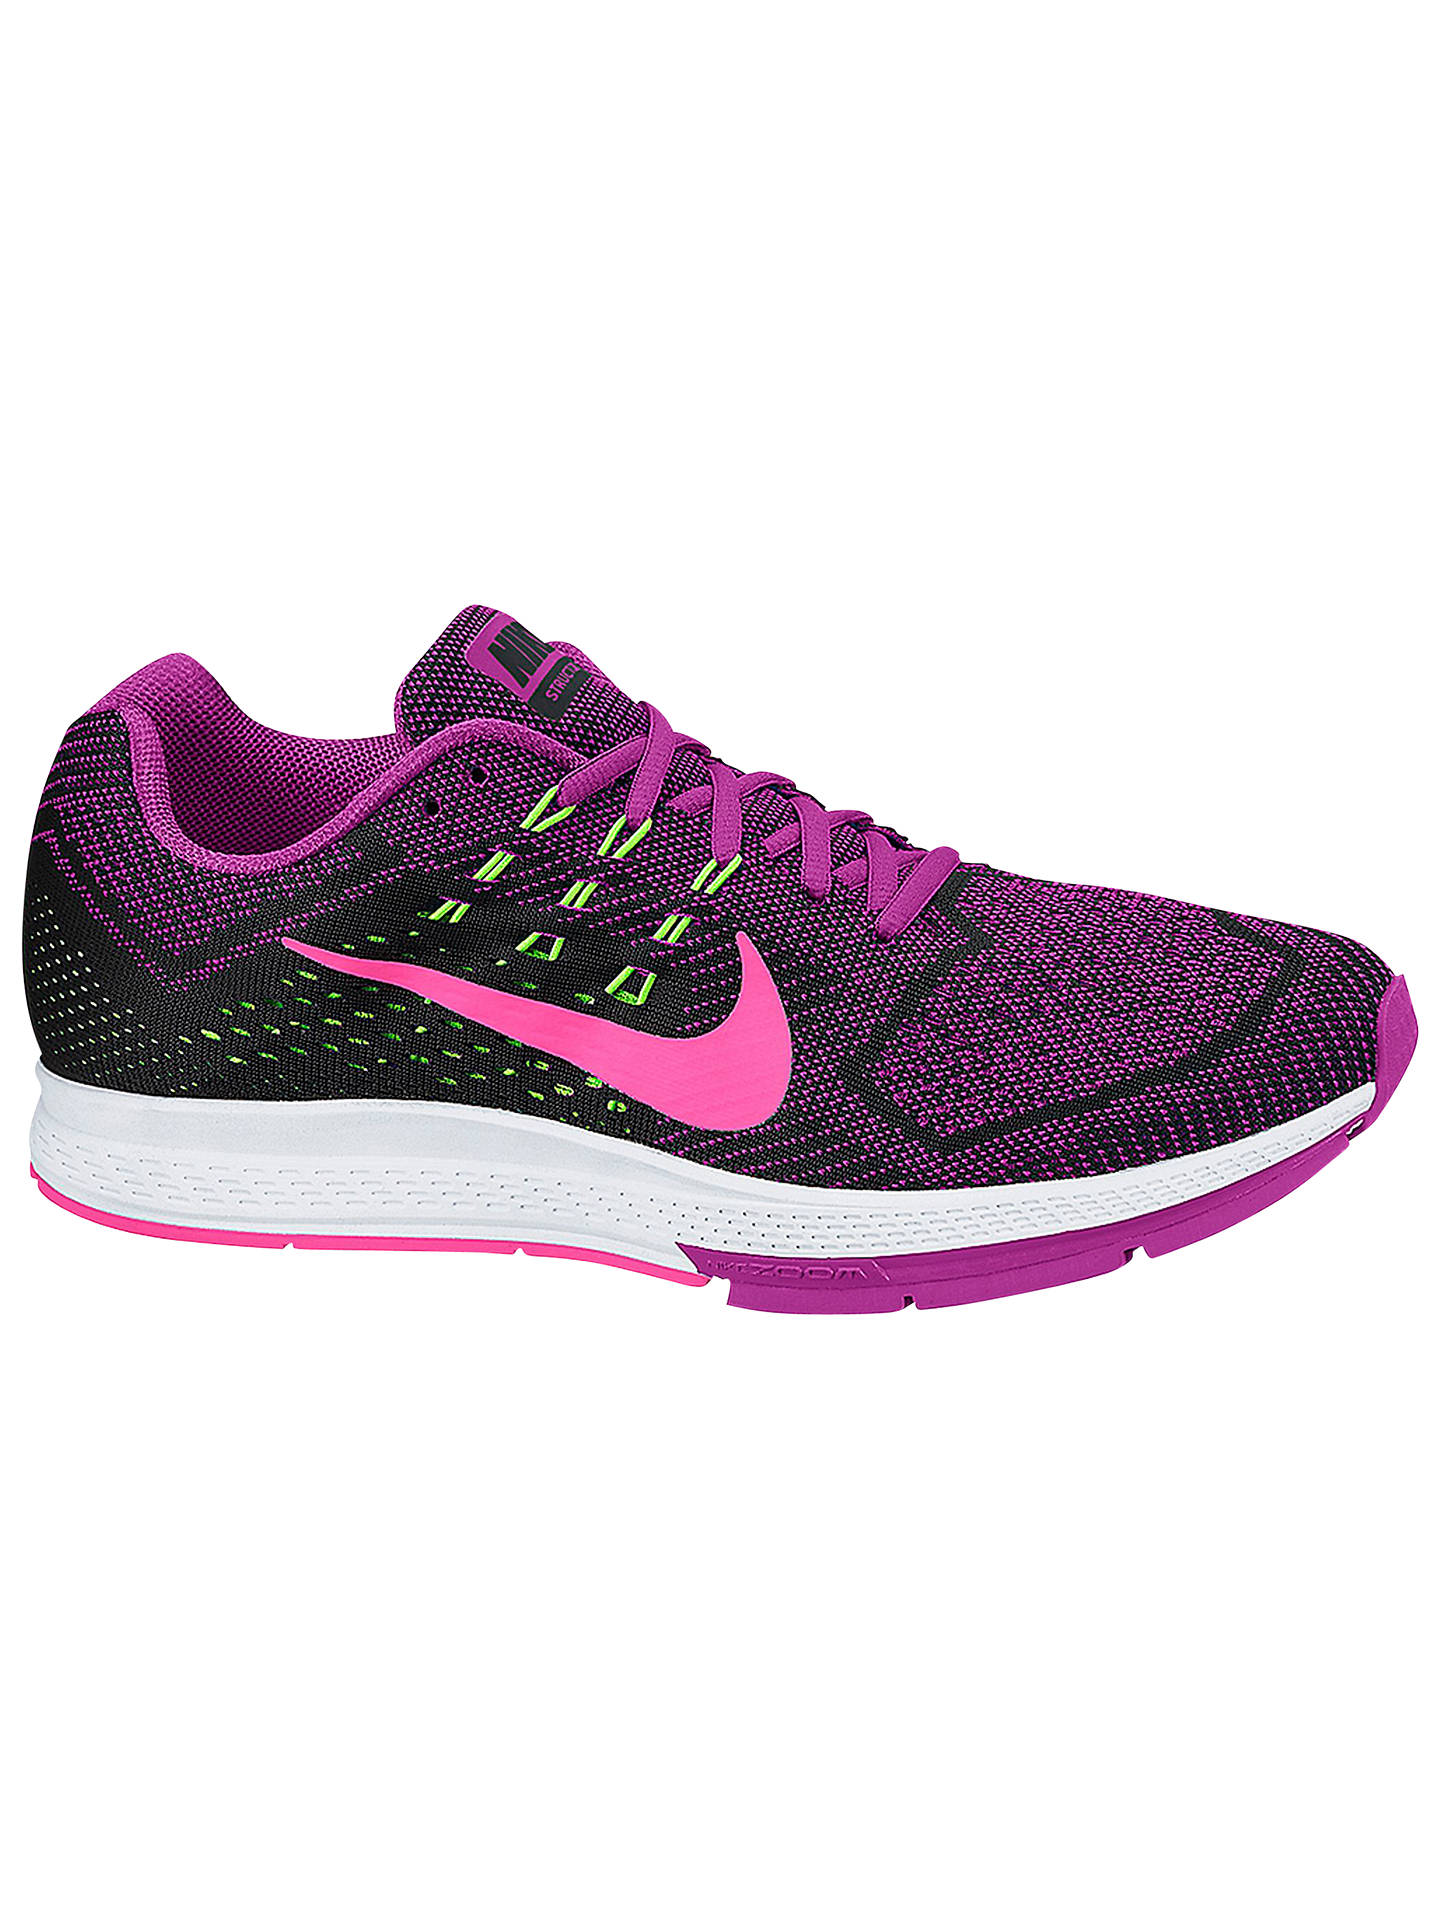 promo code d64af bbb06 Buy Nike Air Zoom Structure 18 Women s Running Shoes, Pink Black, 4 Online  ...